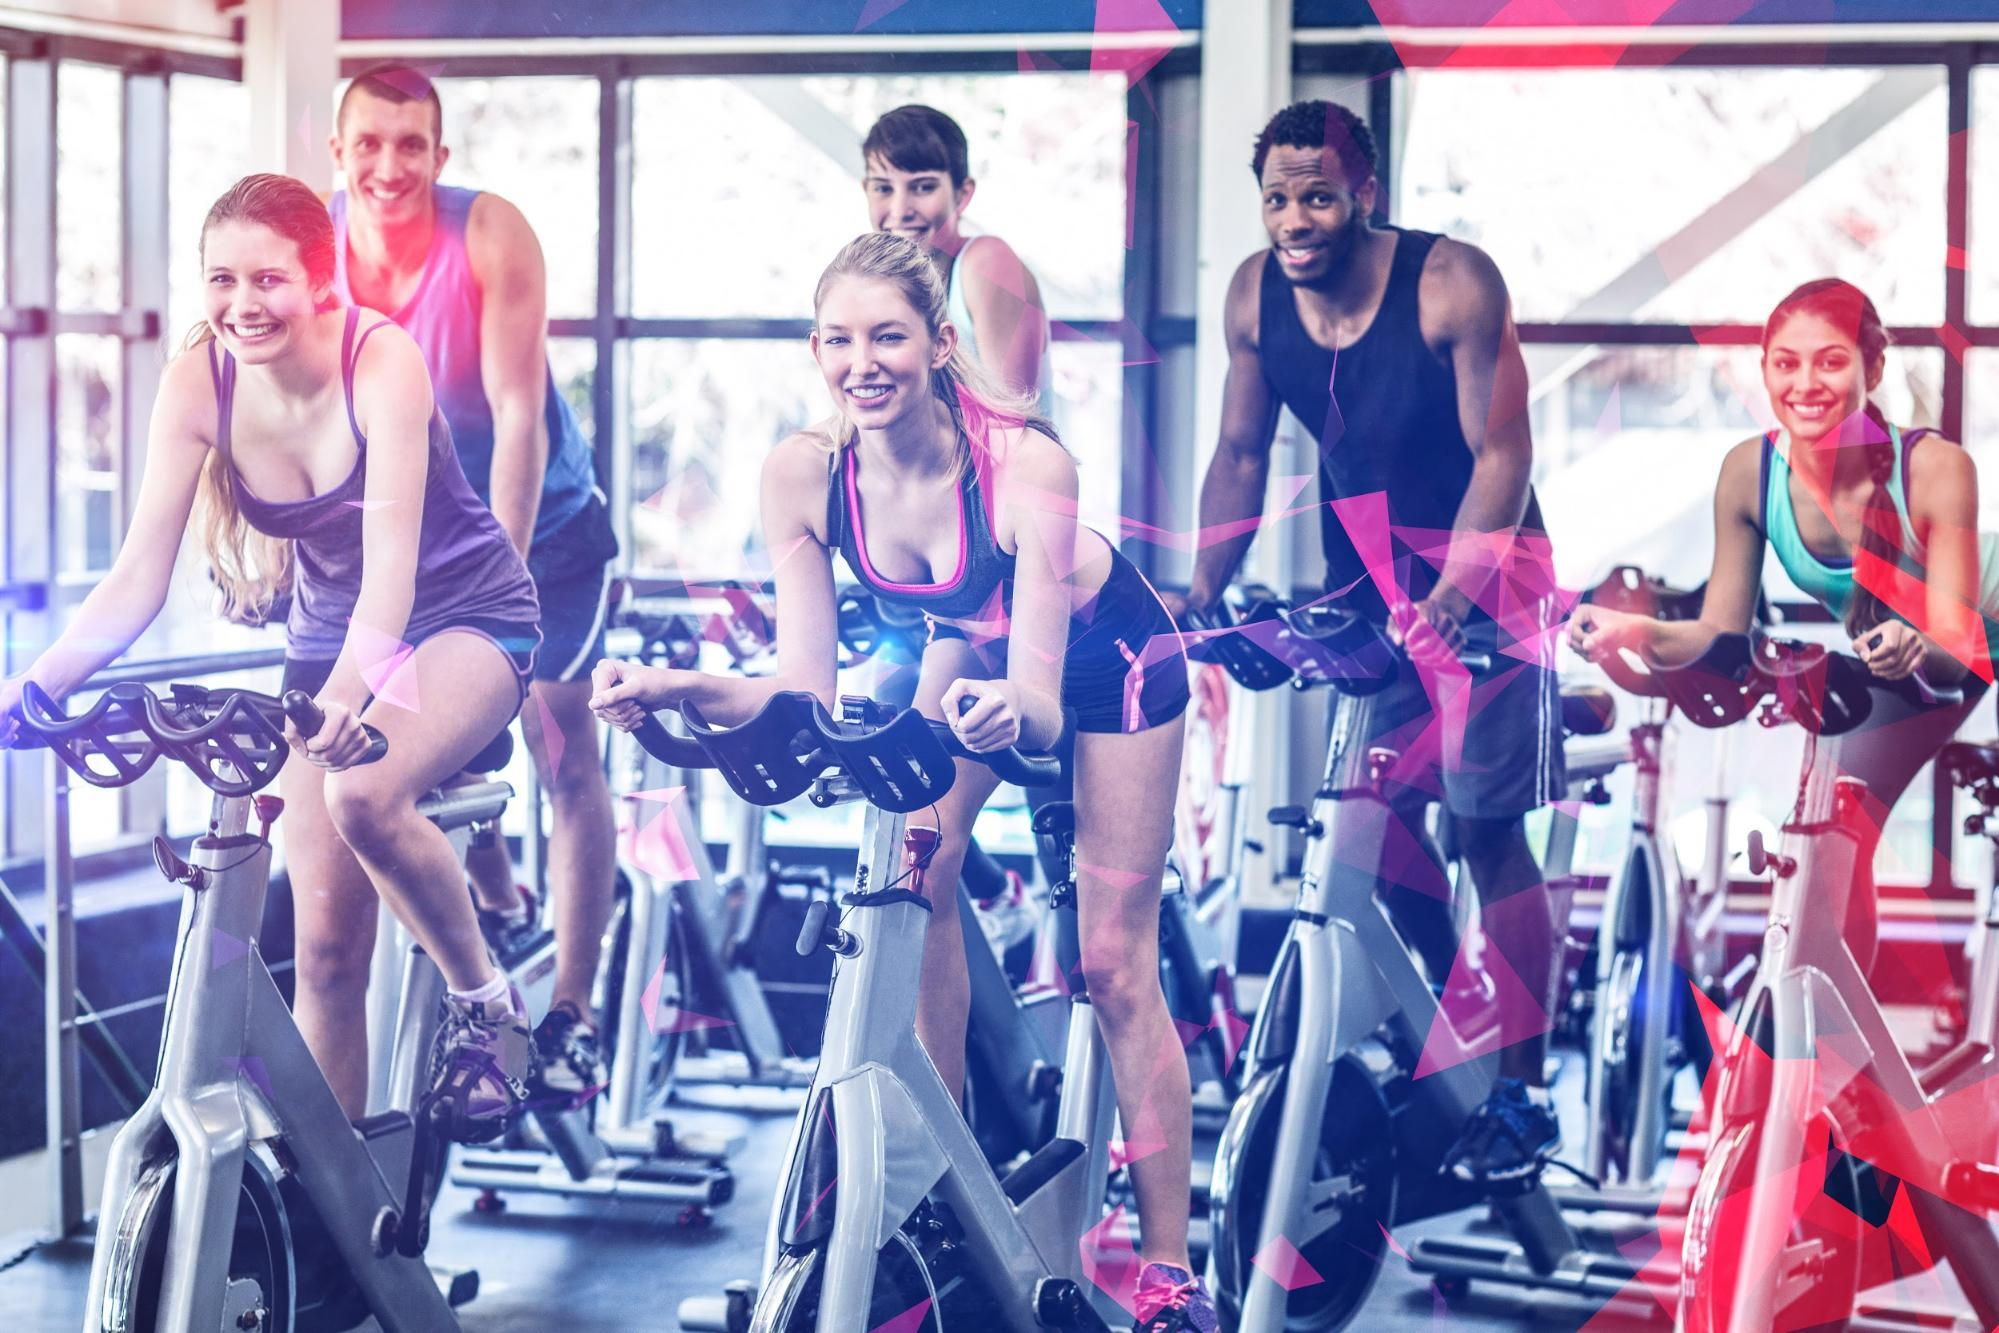 A group of people indoor cycling